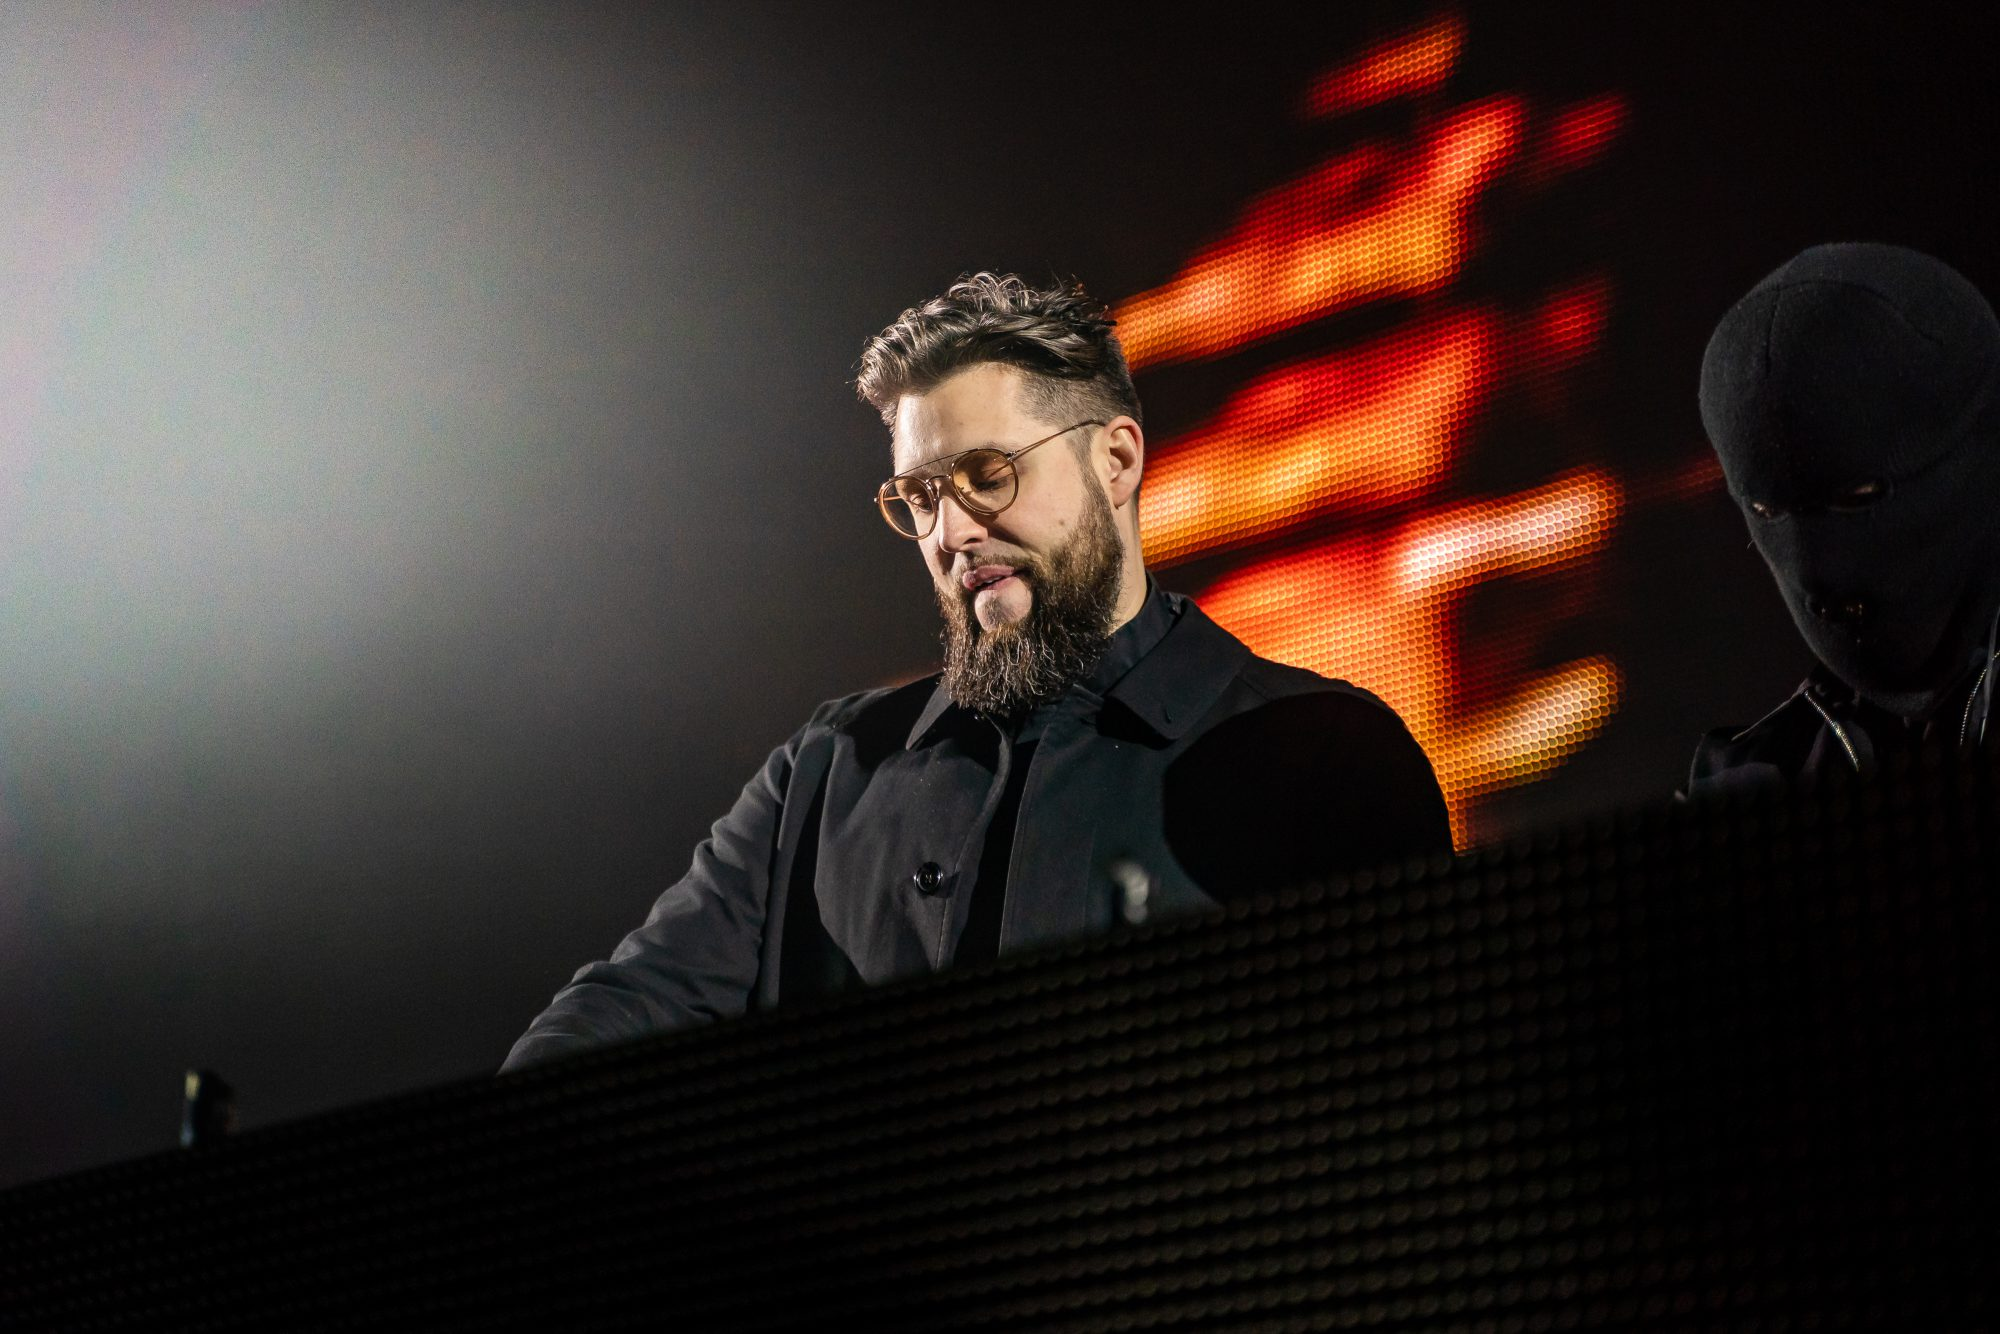 Tchami x Malaa at Audiotistic SoCal 2019